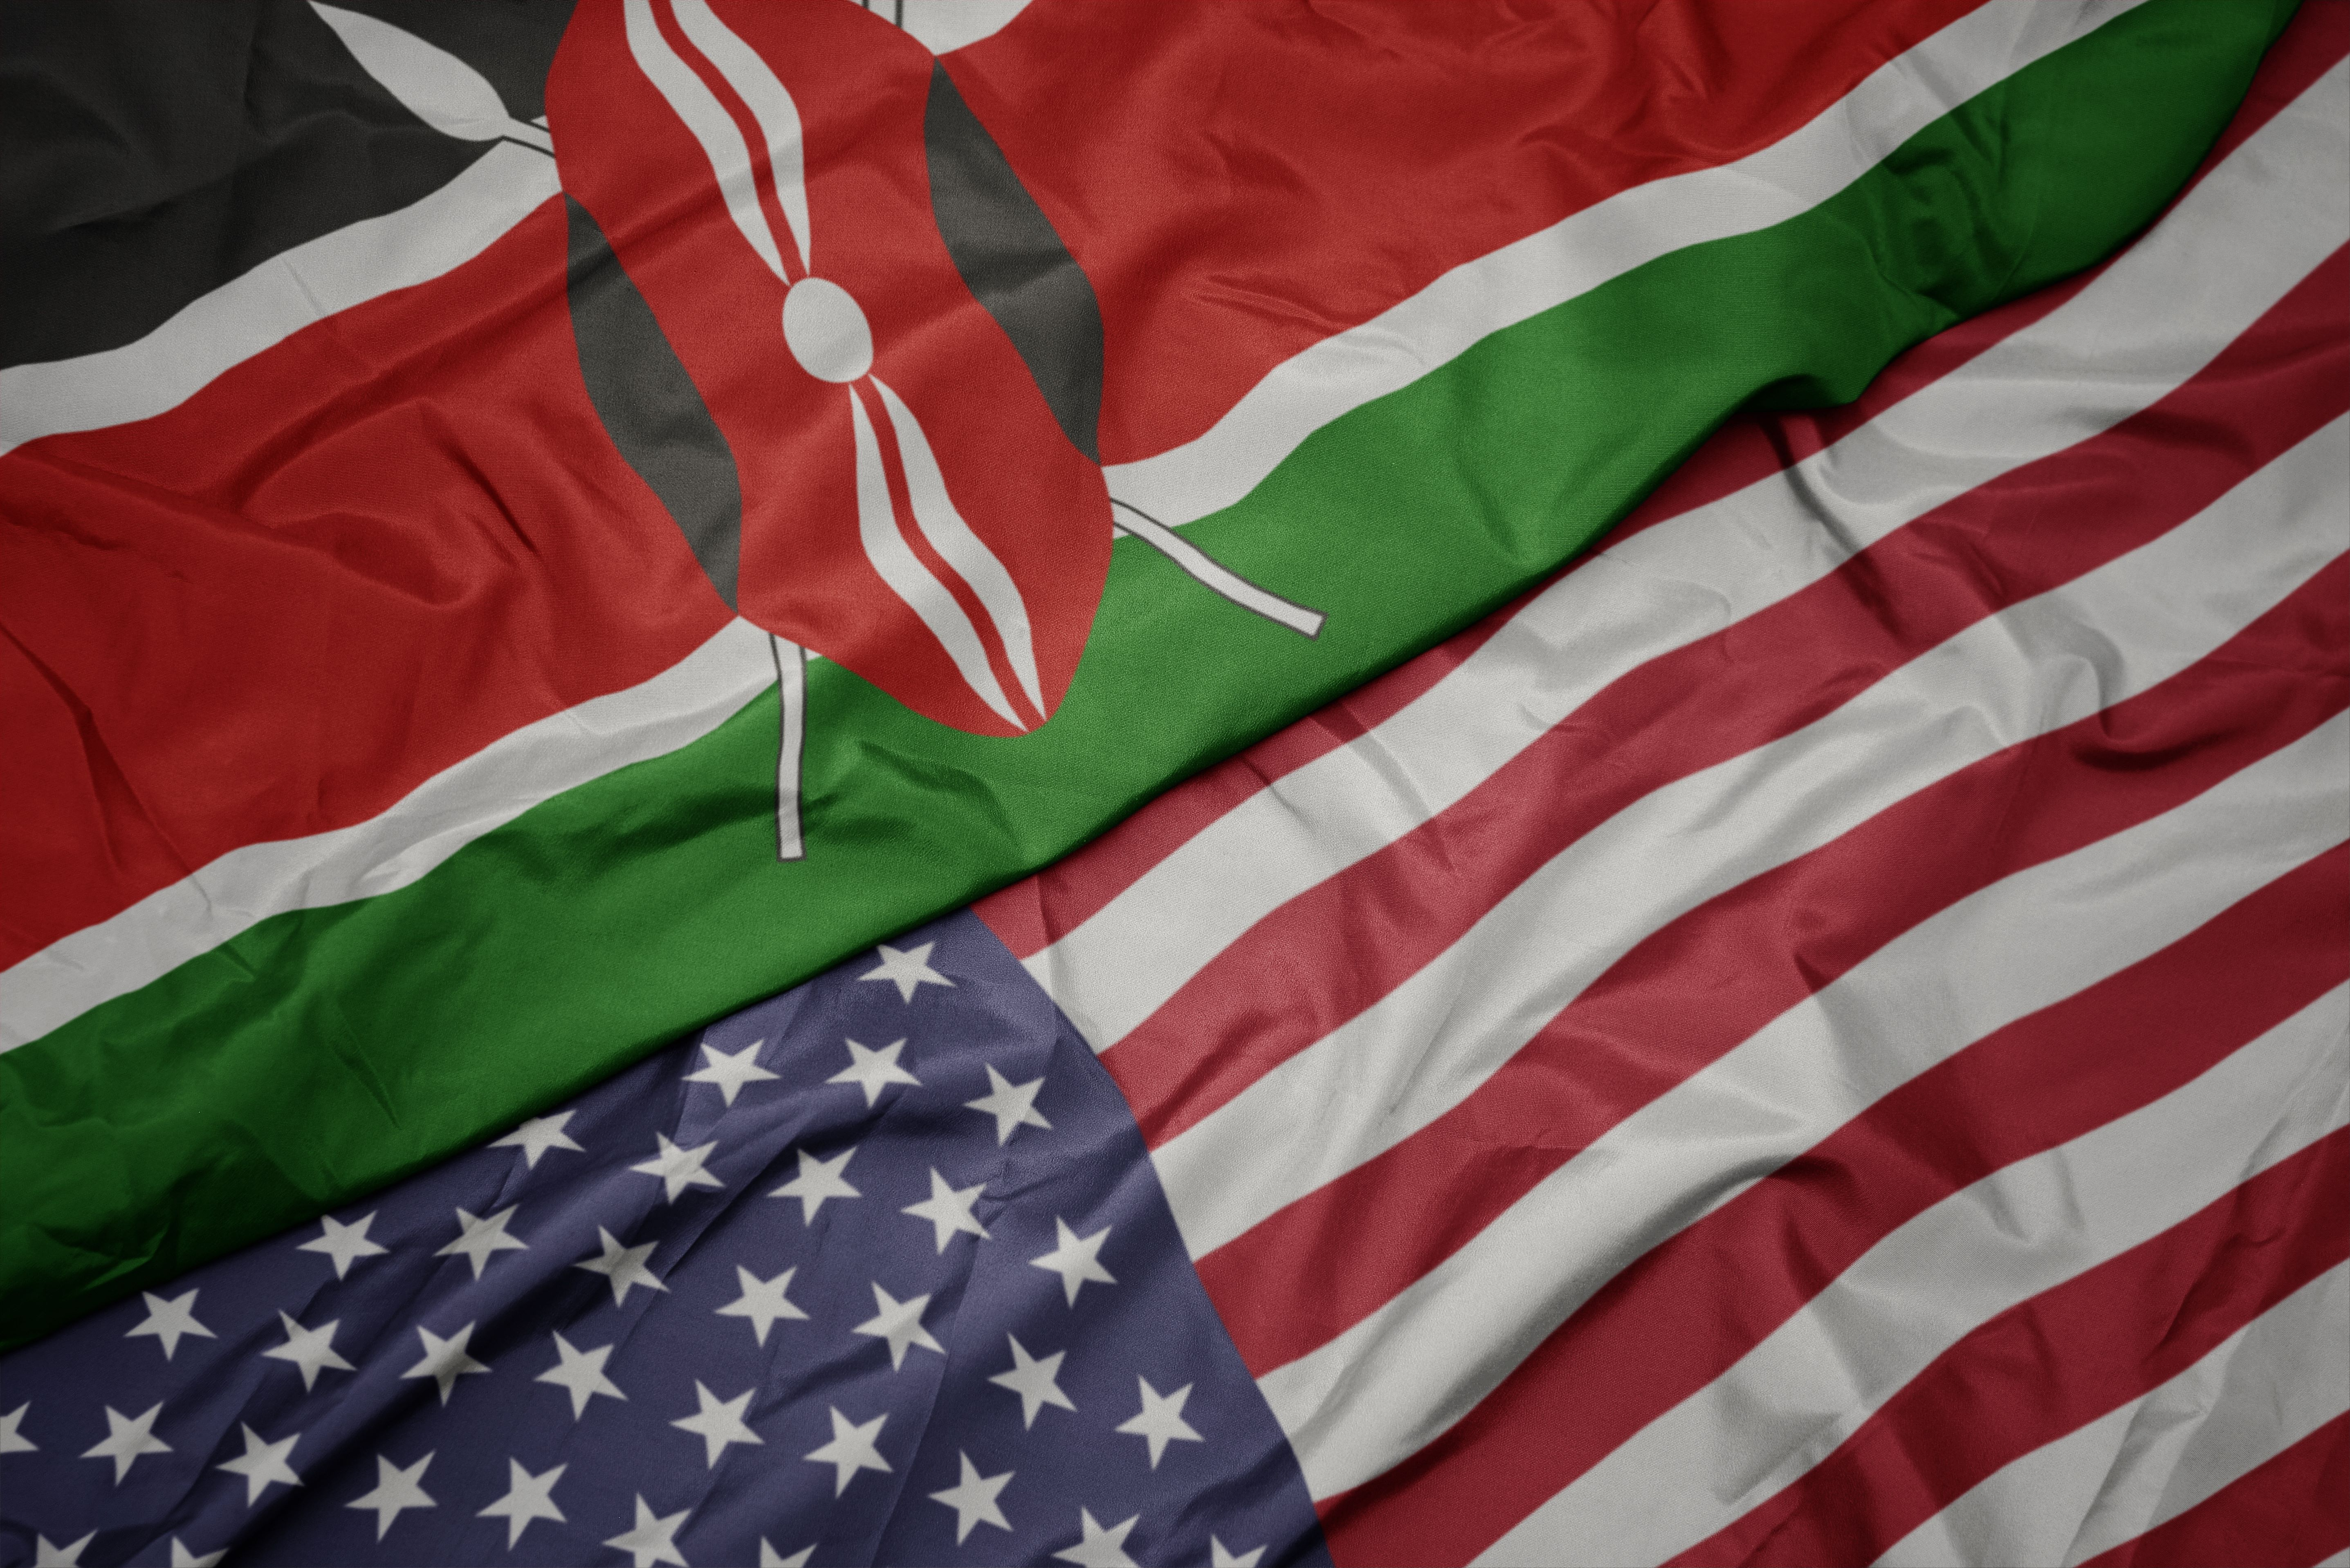 Flags of Kenya and the United States